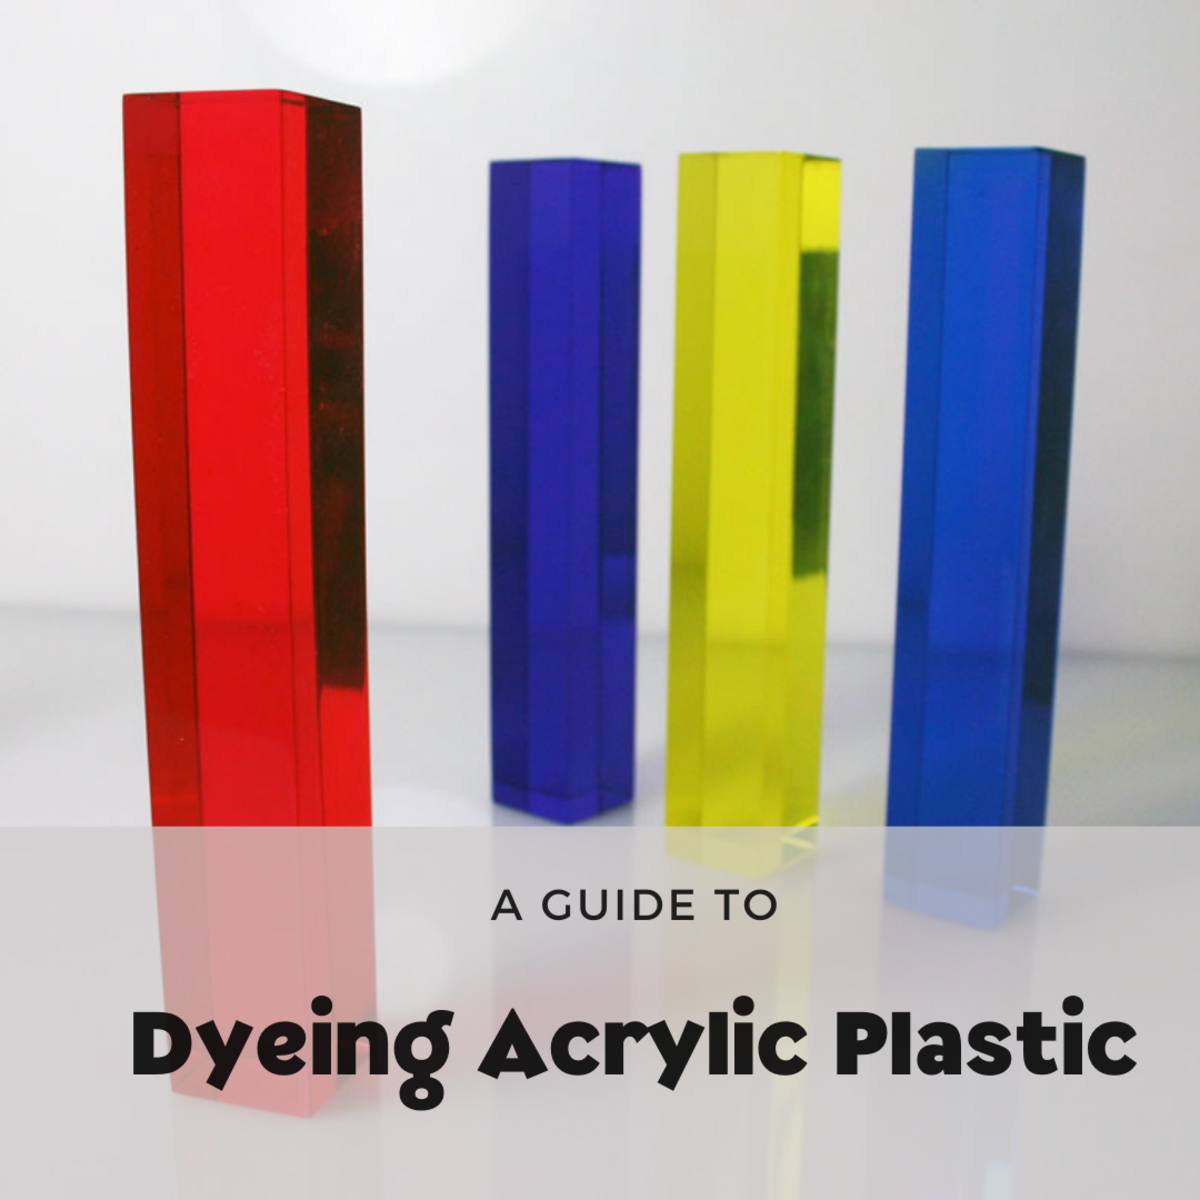 This article describes the process of dyeing acrylic plastic like Plexiglass and Lucite in addition to utilizing dye baths to color the acrylics. The main focus will be on dip and immersion dyeing.